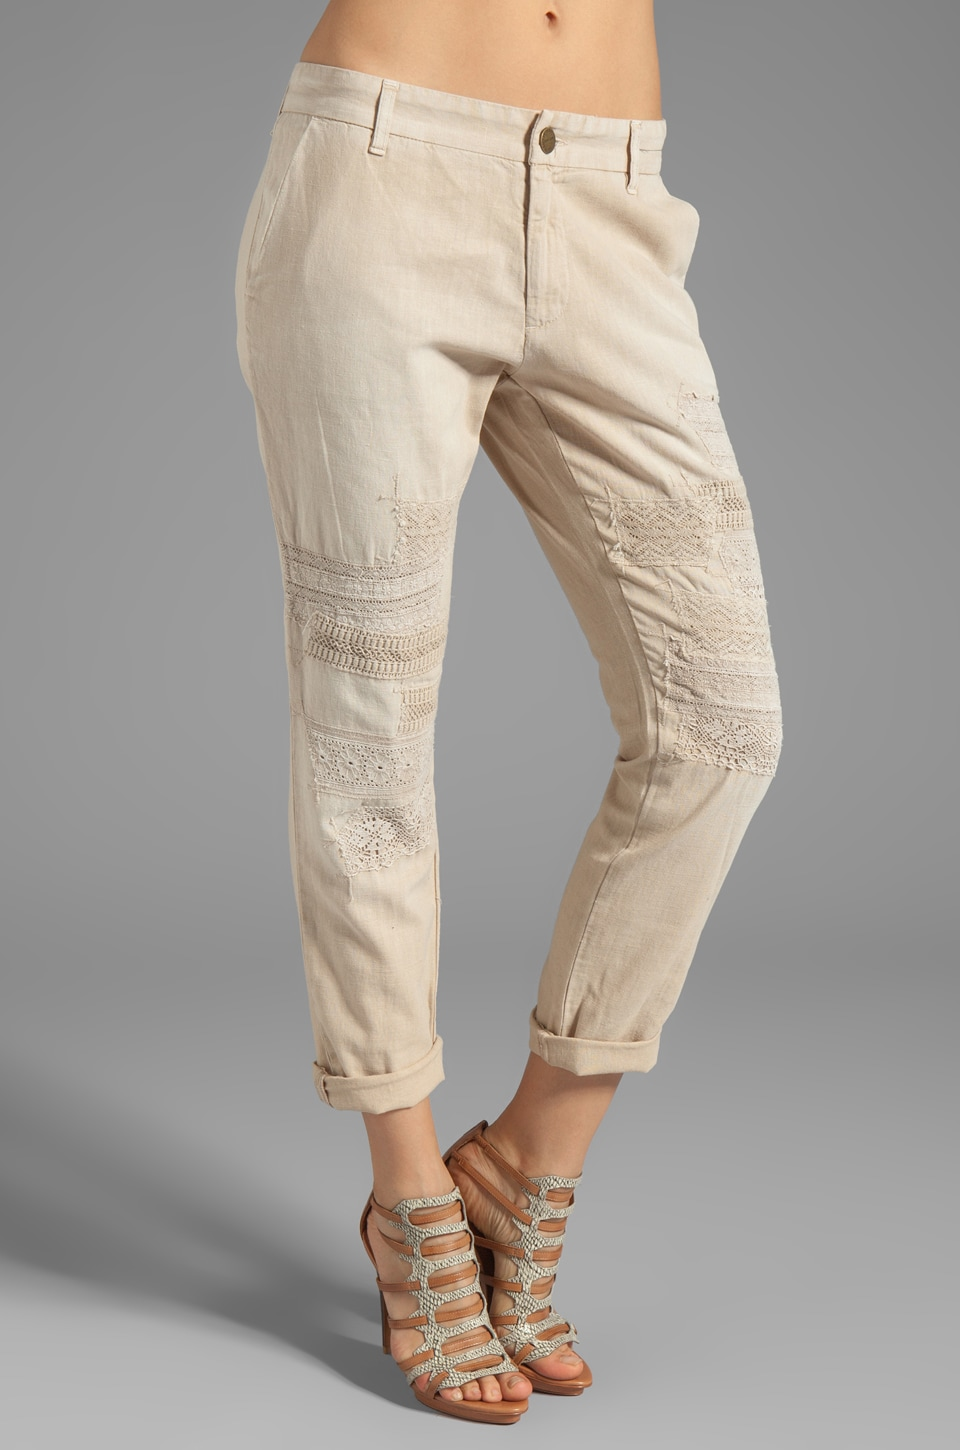 Current/Elliott The Buddy trouser in Safari w/Lace